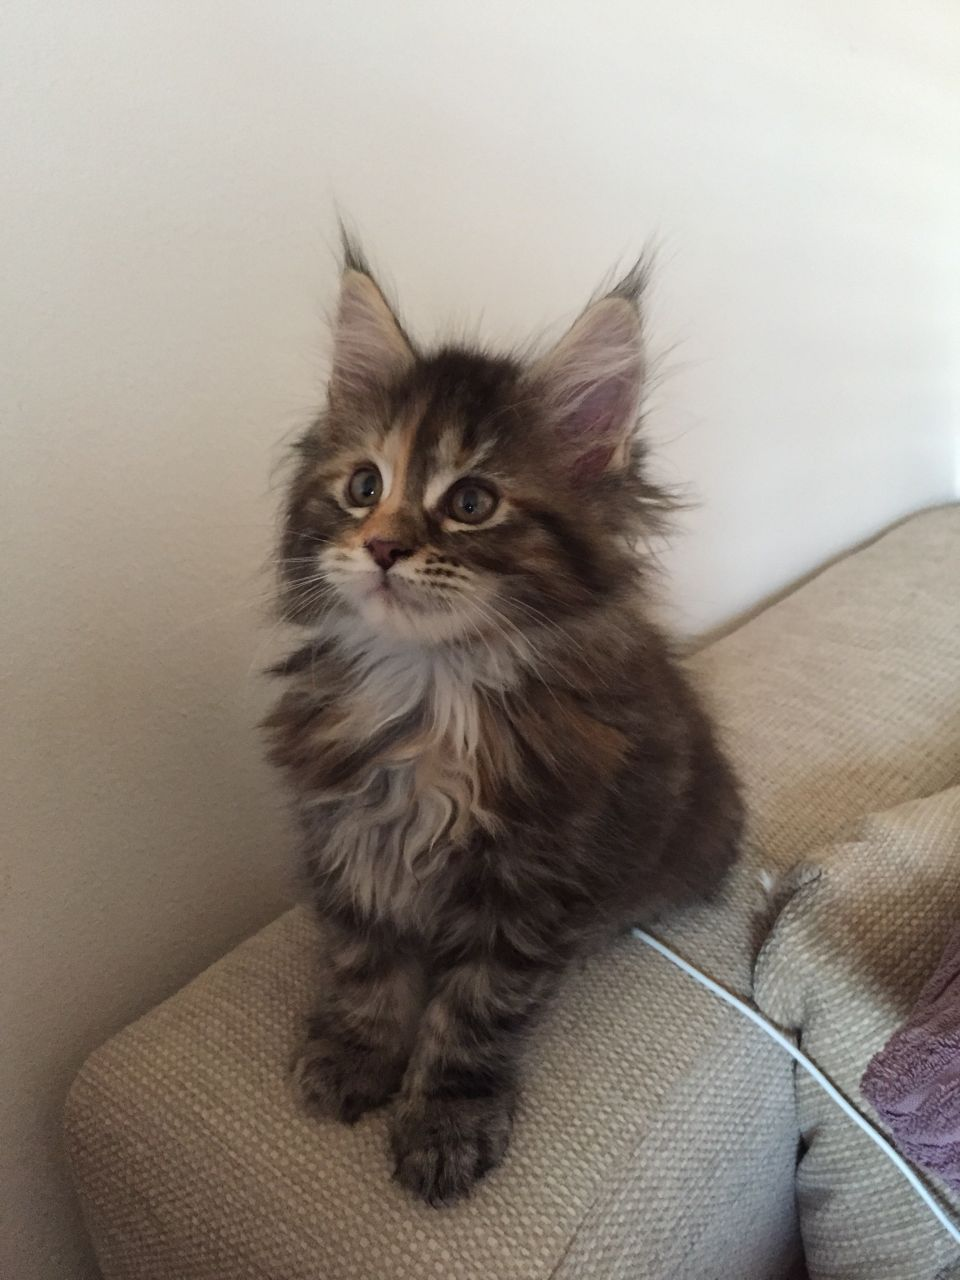 cats maine coon for sale  maine coon breeders hong kong  buy maine coon breeders  maine coon